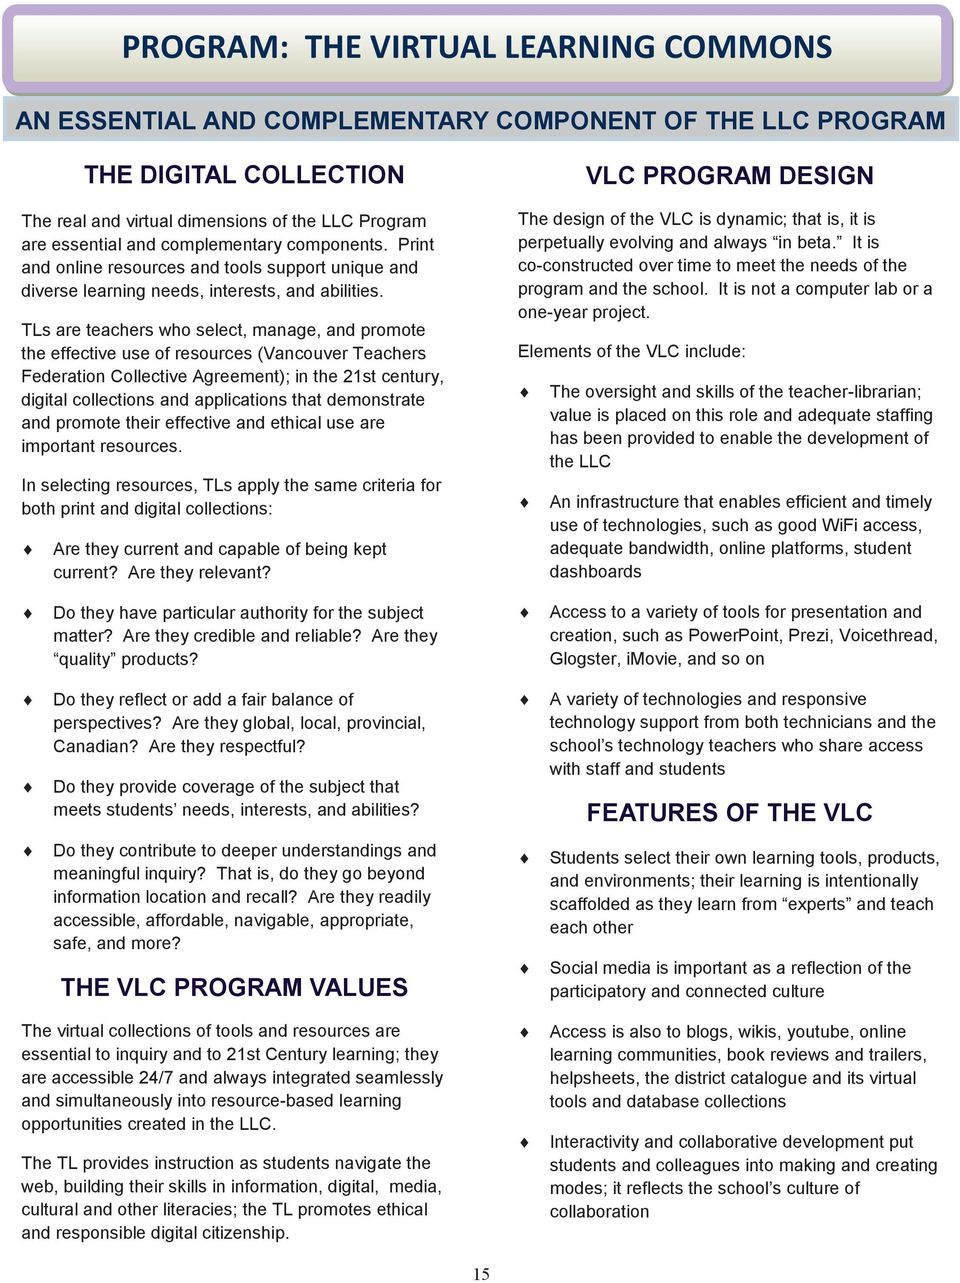 TLs are teachers who select, manage, and promote the effective use of resources (Vancouver Teachers Federation Collective Agreement); in the 21st century, digital collections and applications that